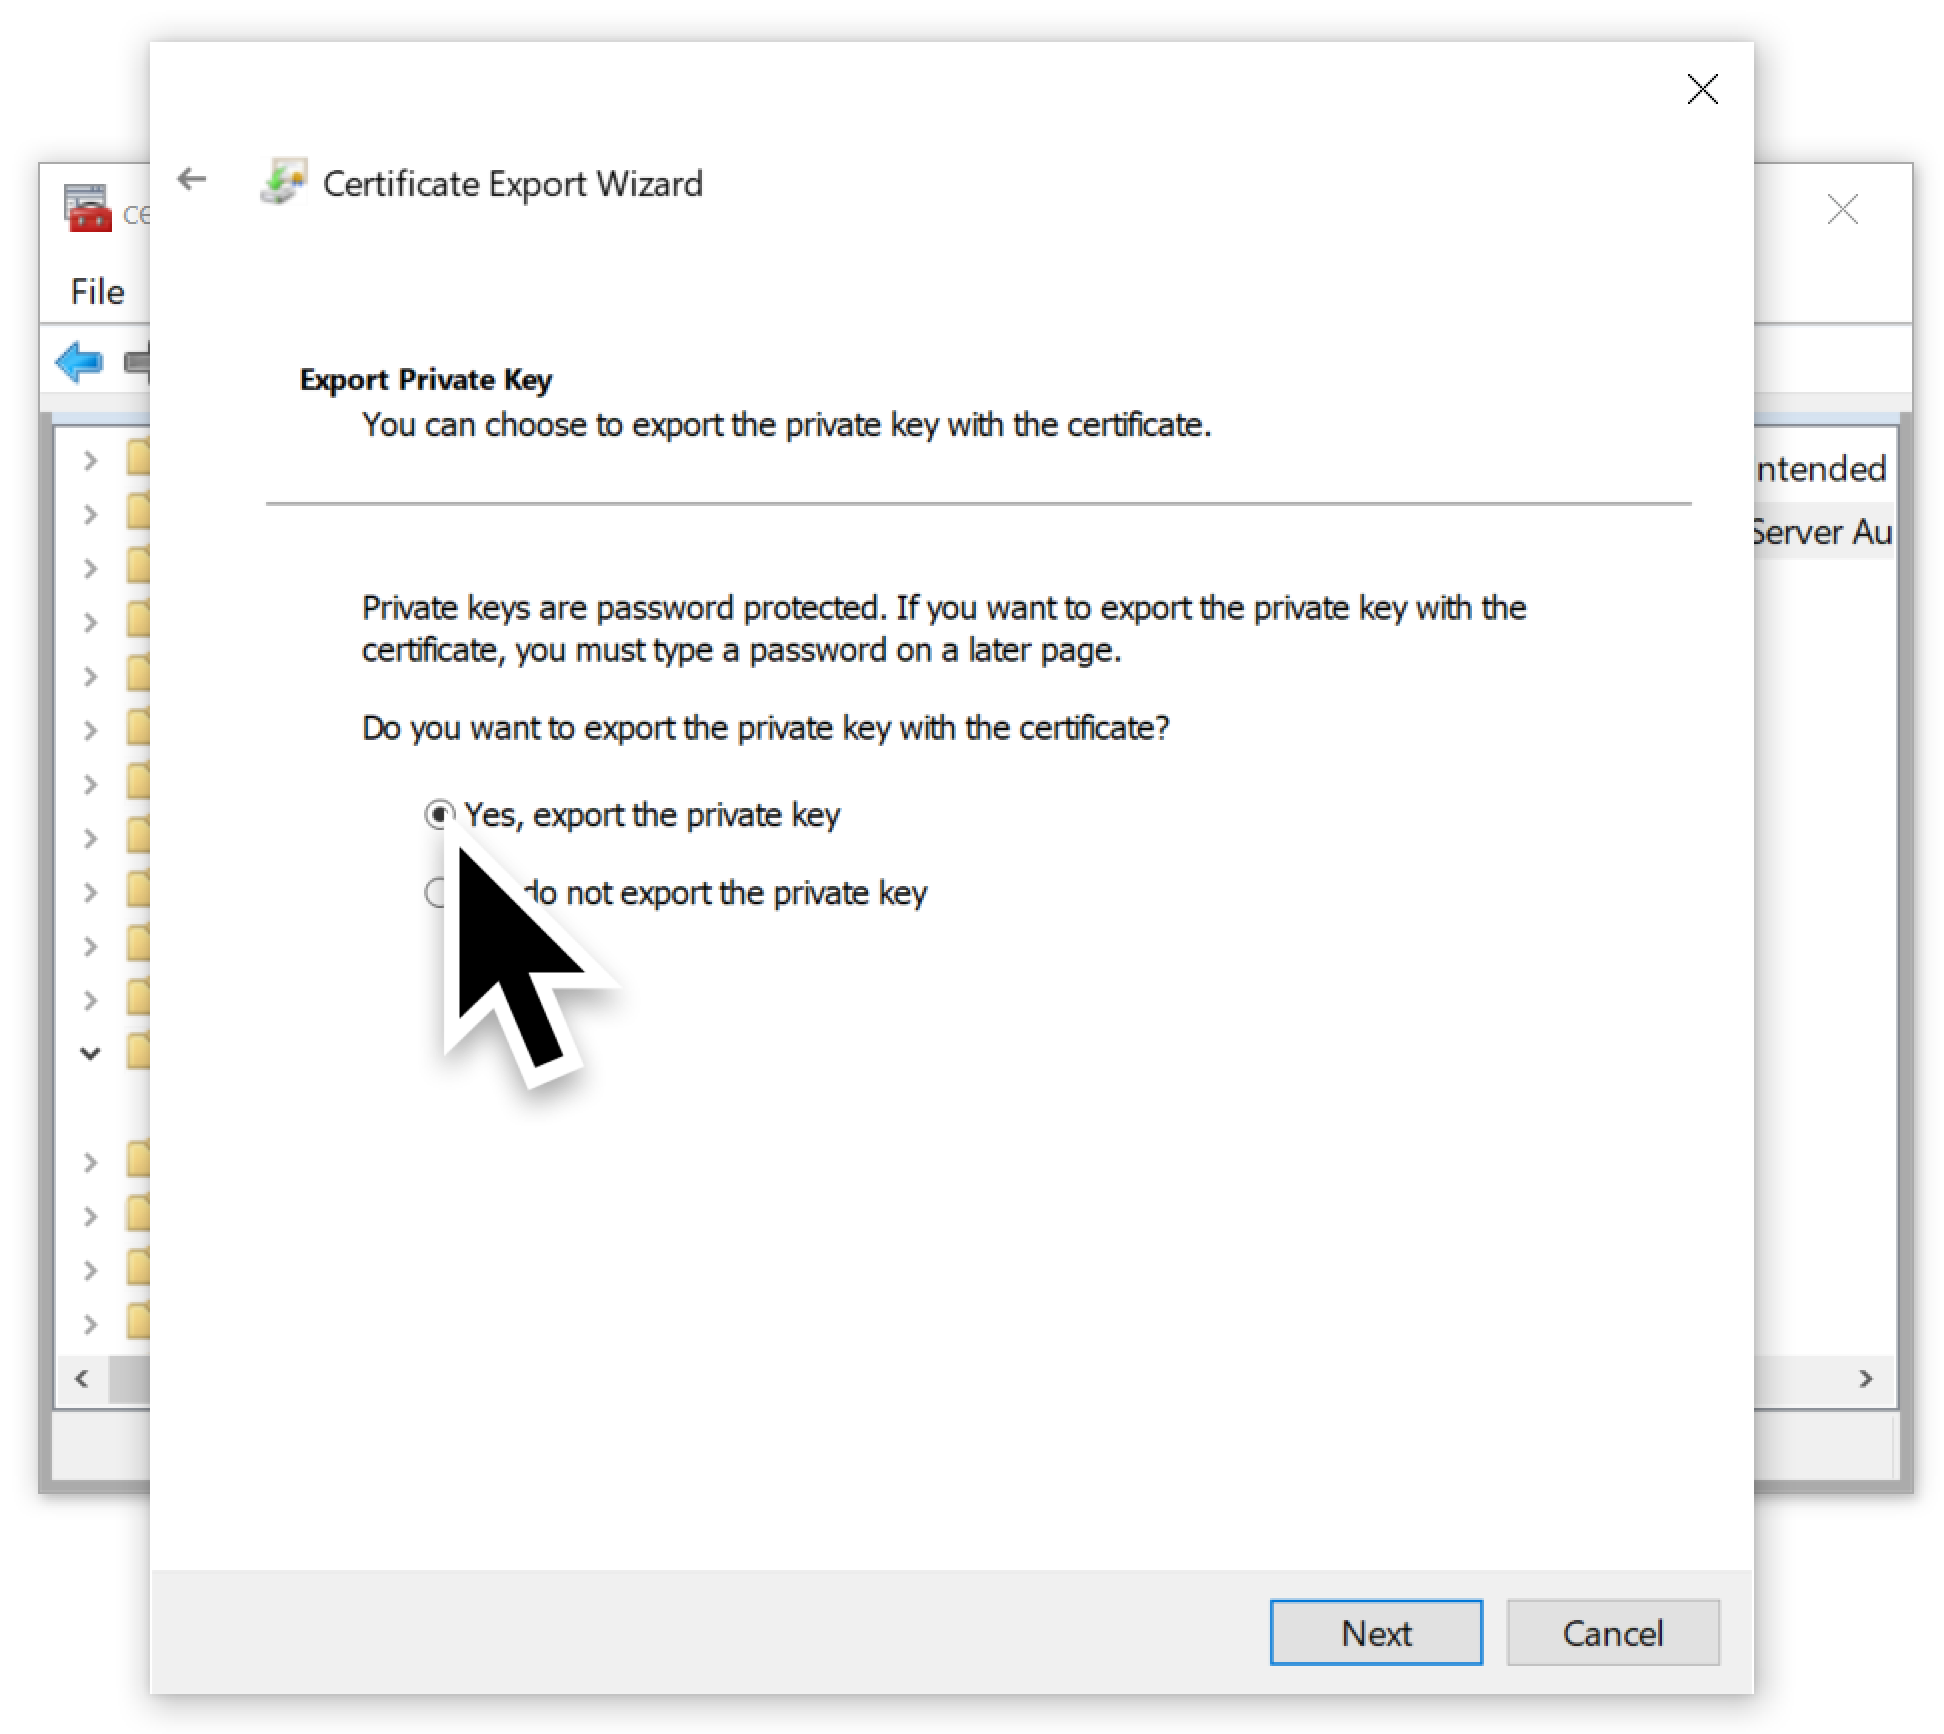 "The screenshot reads: ""Export Private Key: You can choose to export the private key with the certificate. Private keys are password protected. If you want to export the private key with the certificate, you must type a password on a later page. Do you want to export the private key with the certificate?"" The large black arrow shows what to select to ensure the private key is exported with the certificate."